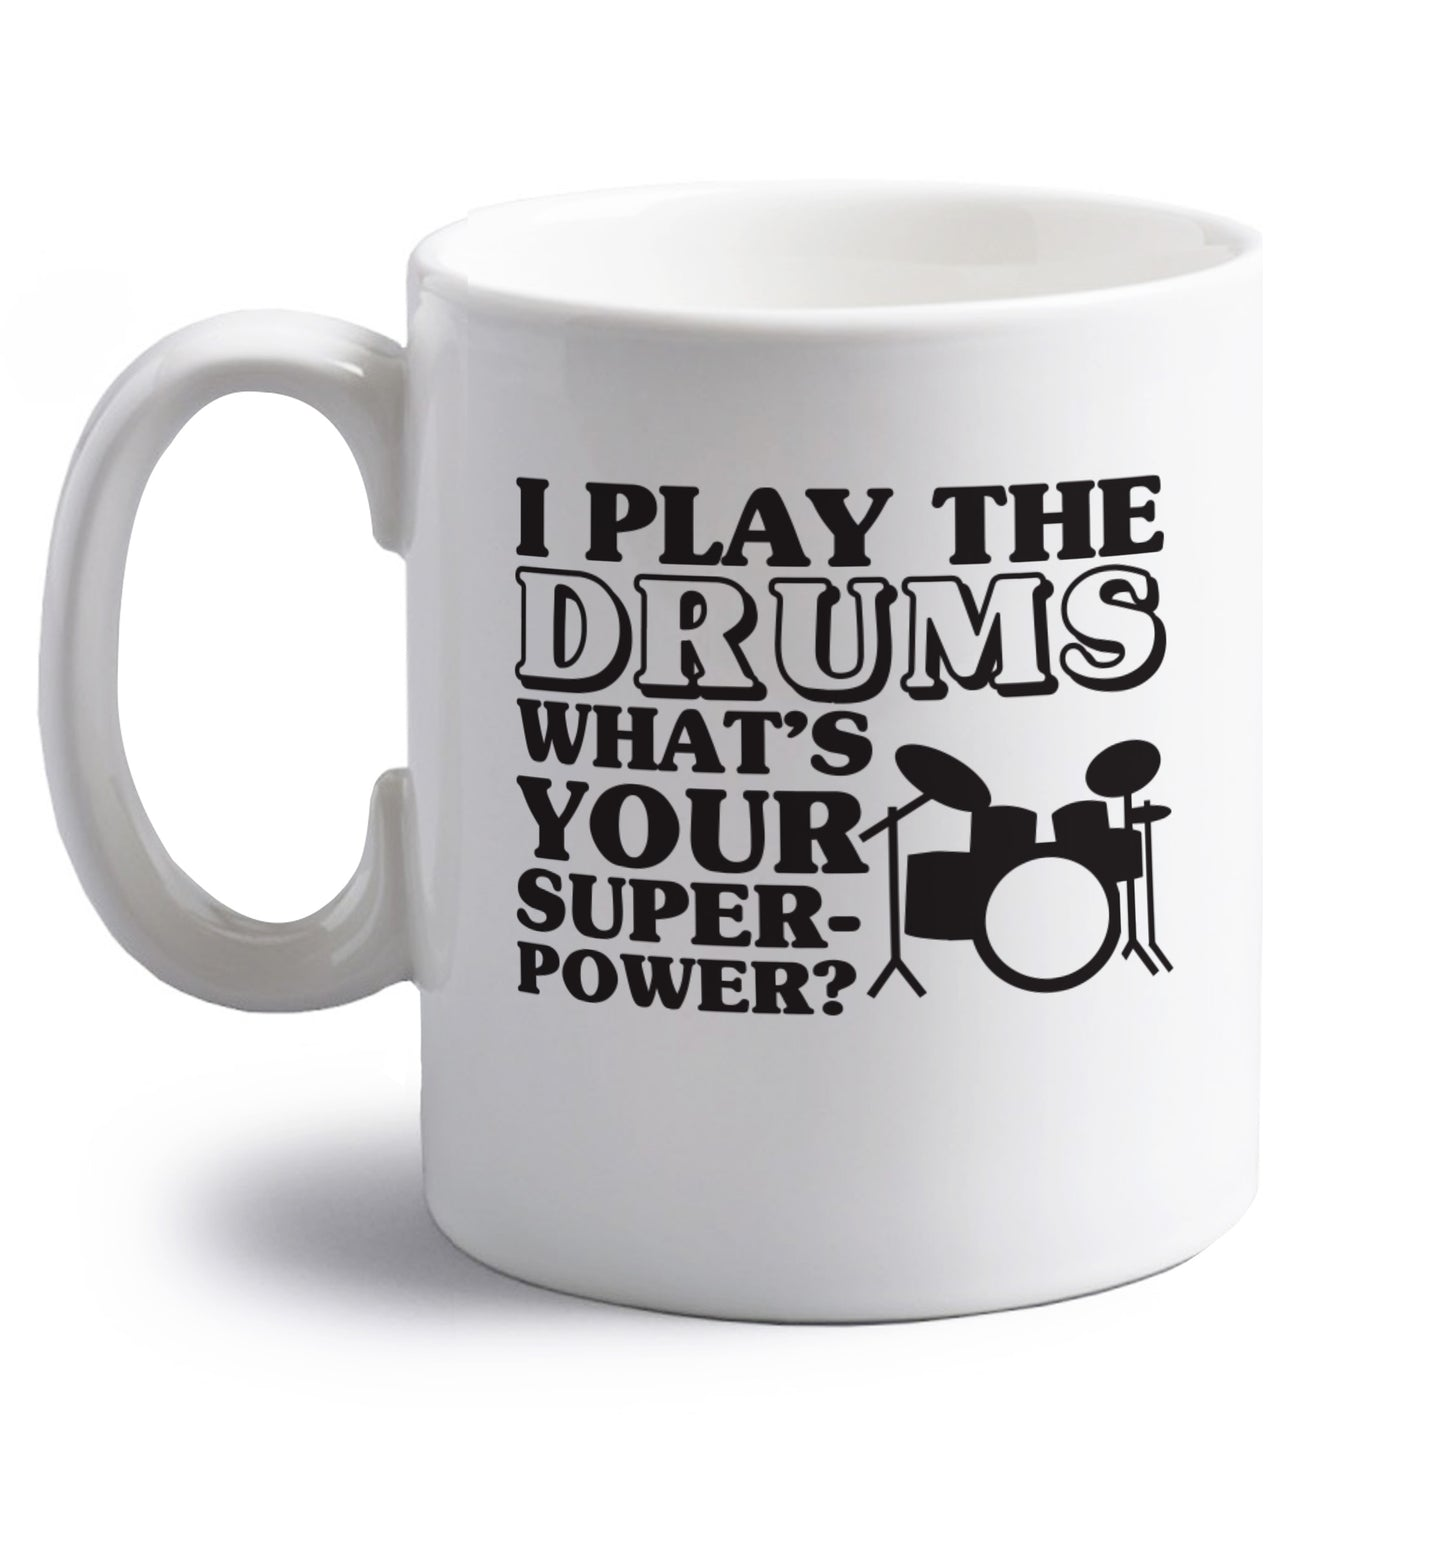 I play the drums what's your superpower? right handed white ceramic mug